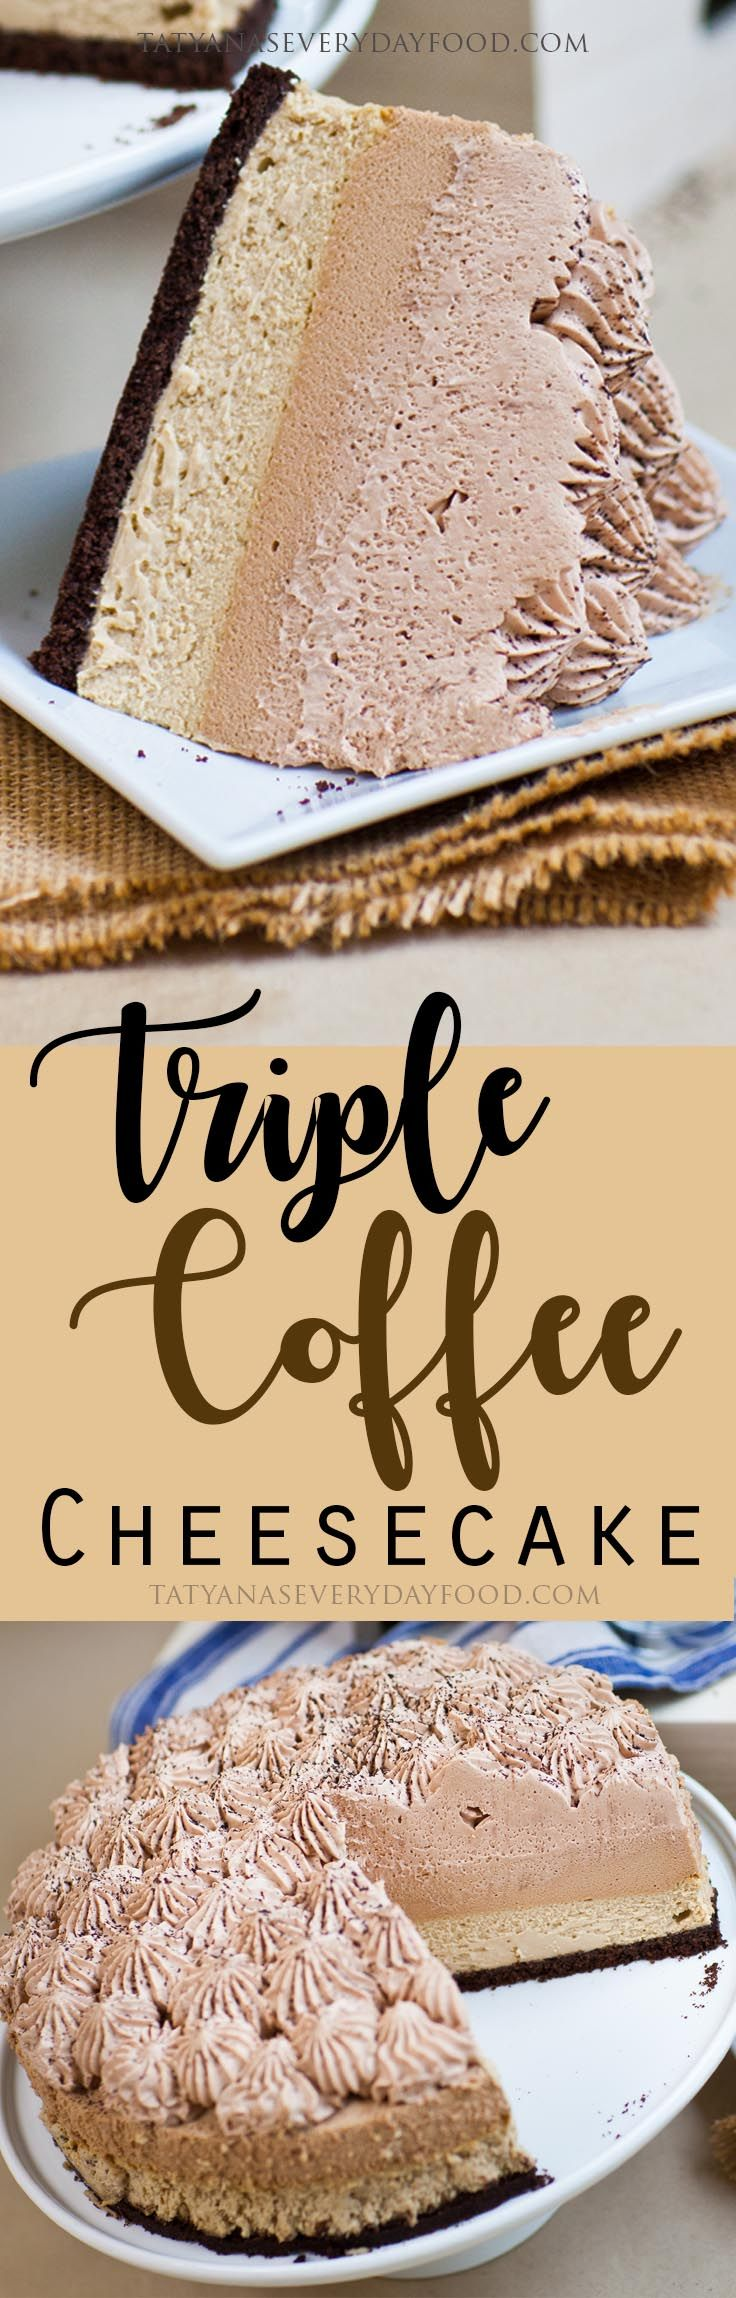 Triple Coffee Cheesecake - Tatyanas Everyday Food